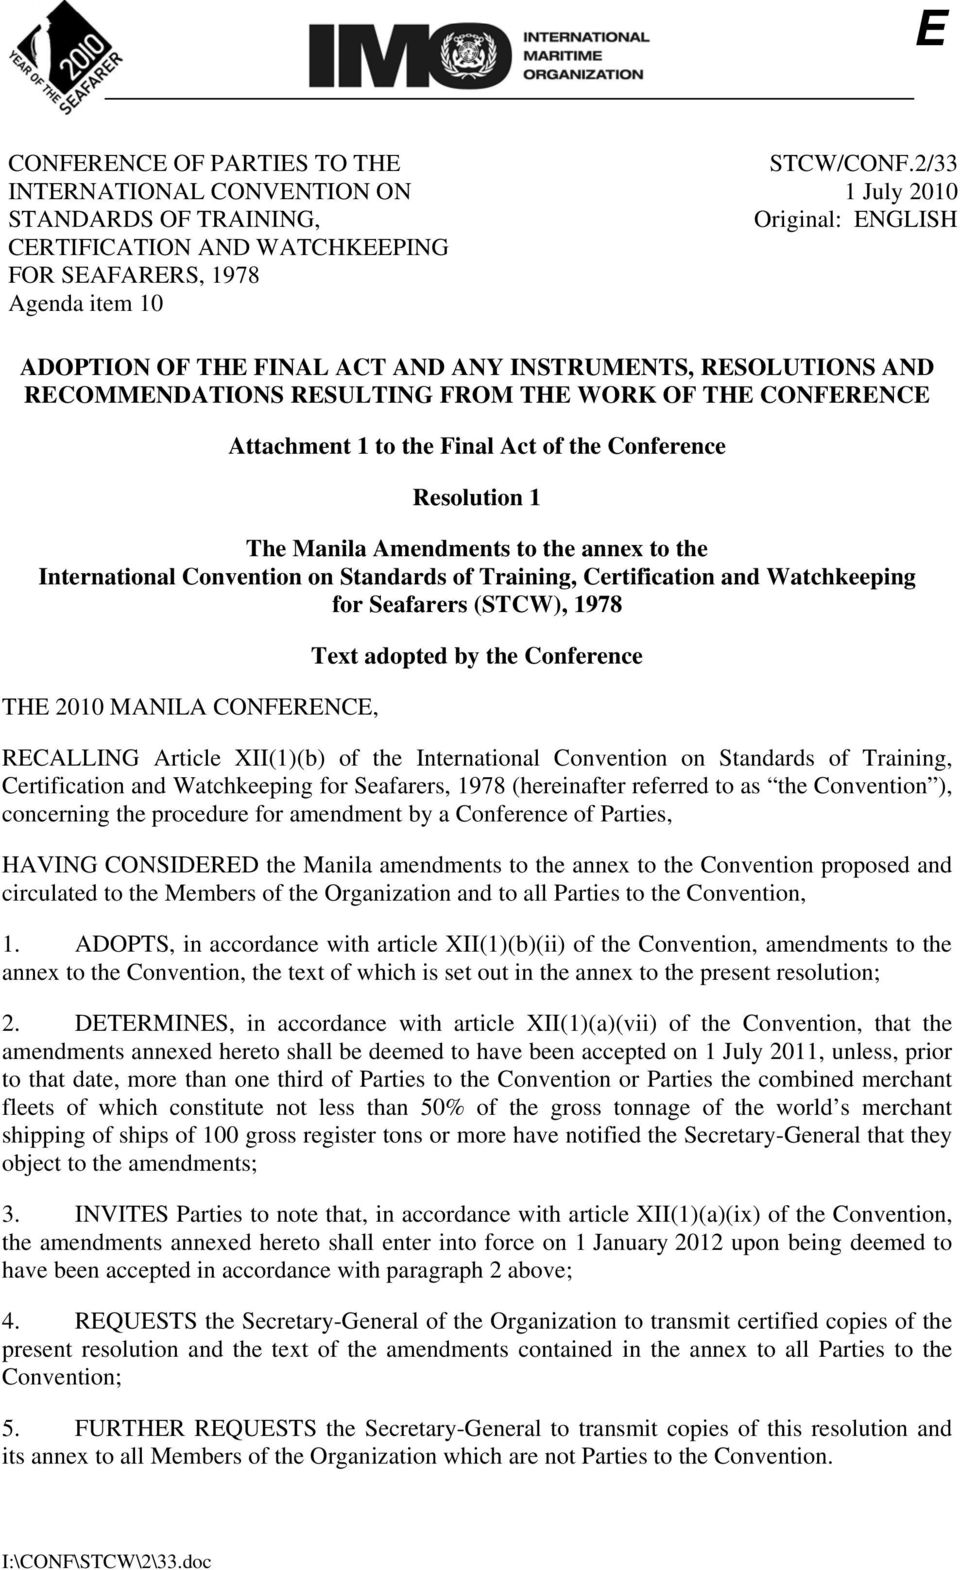 Conference Resolution 1 The Manila Amendments to the annex to the International Convention on Standards of Training, Certification and Watchkeeping for Seafarers (STCW), 1978 THE 2010 MANILA